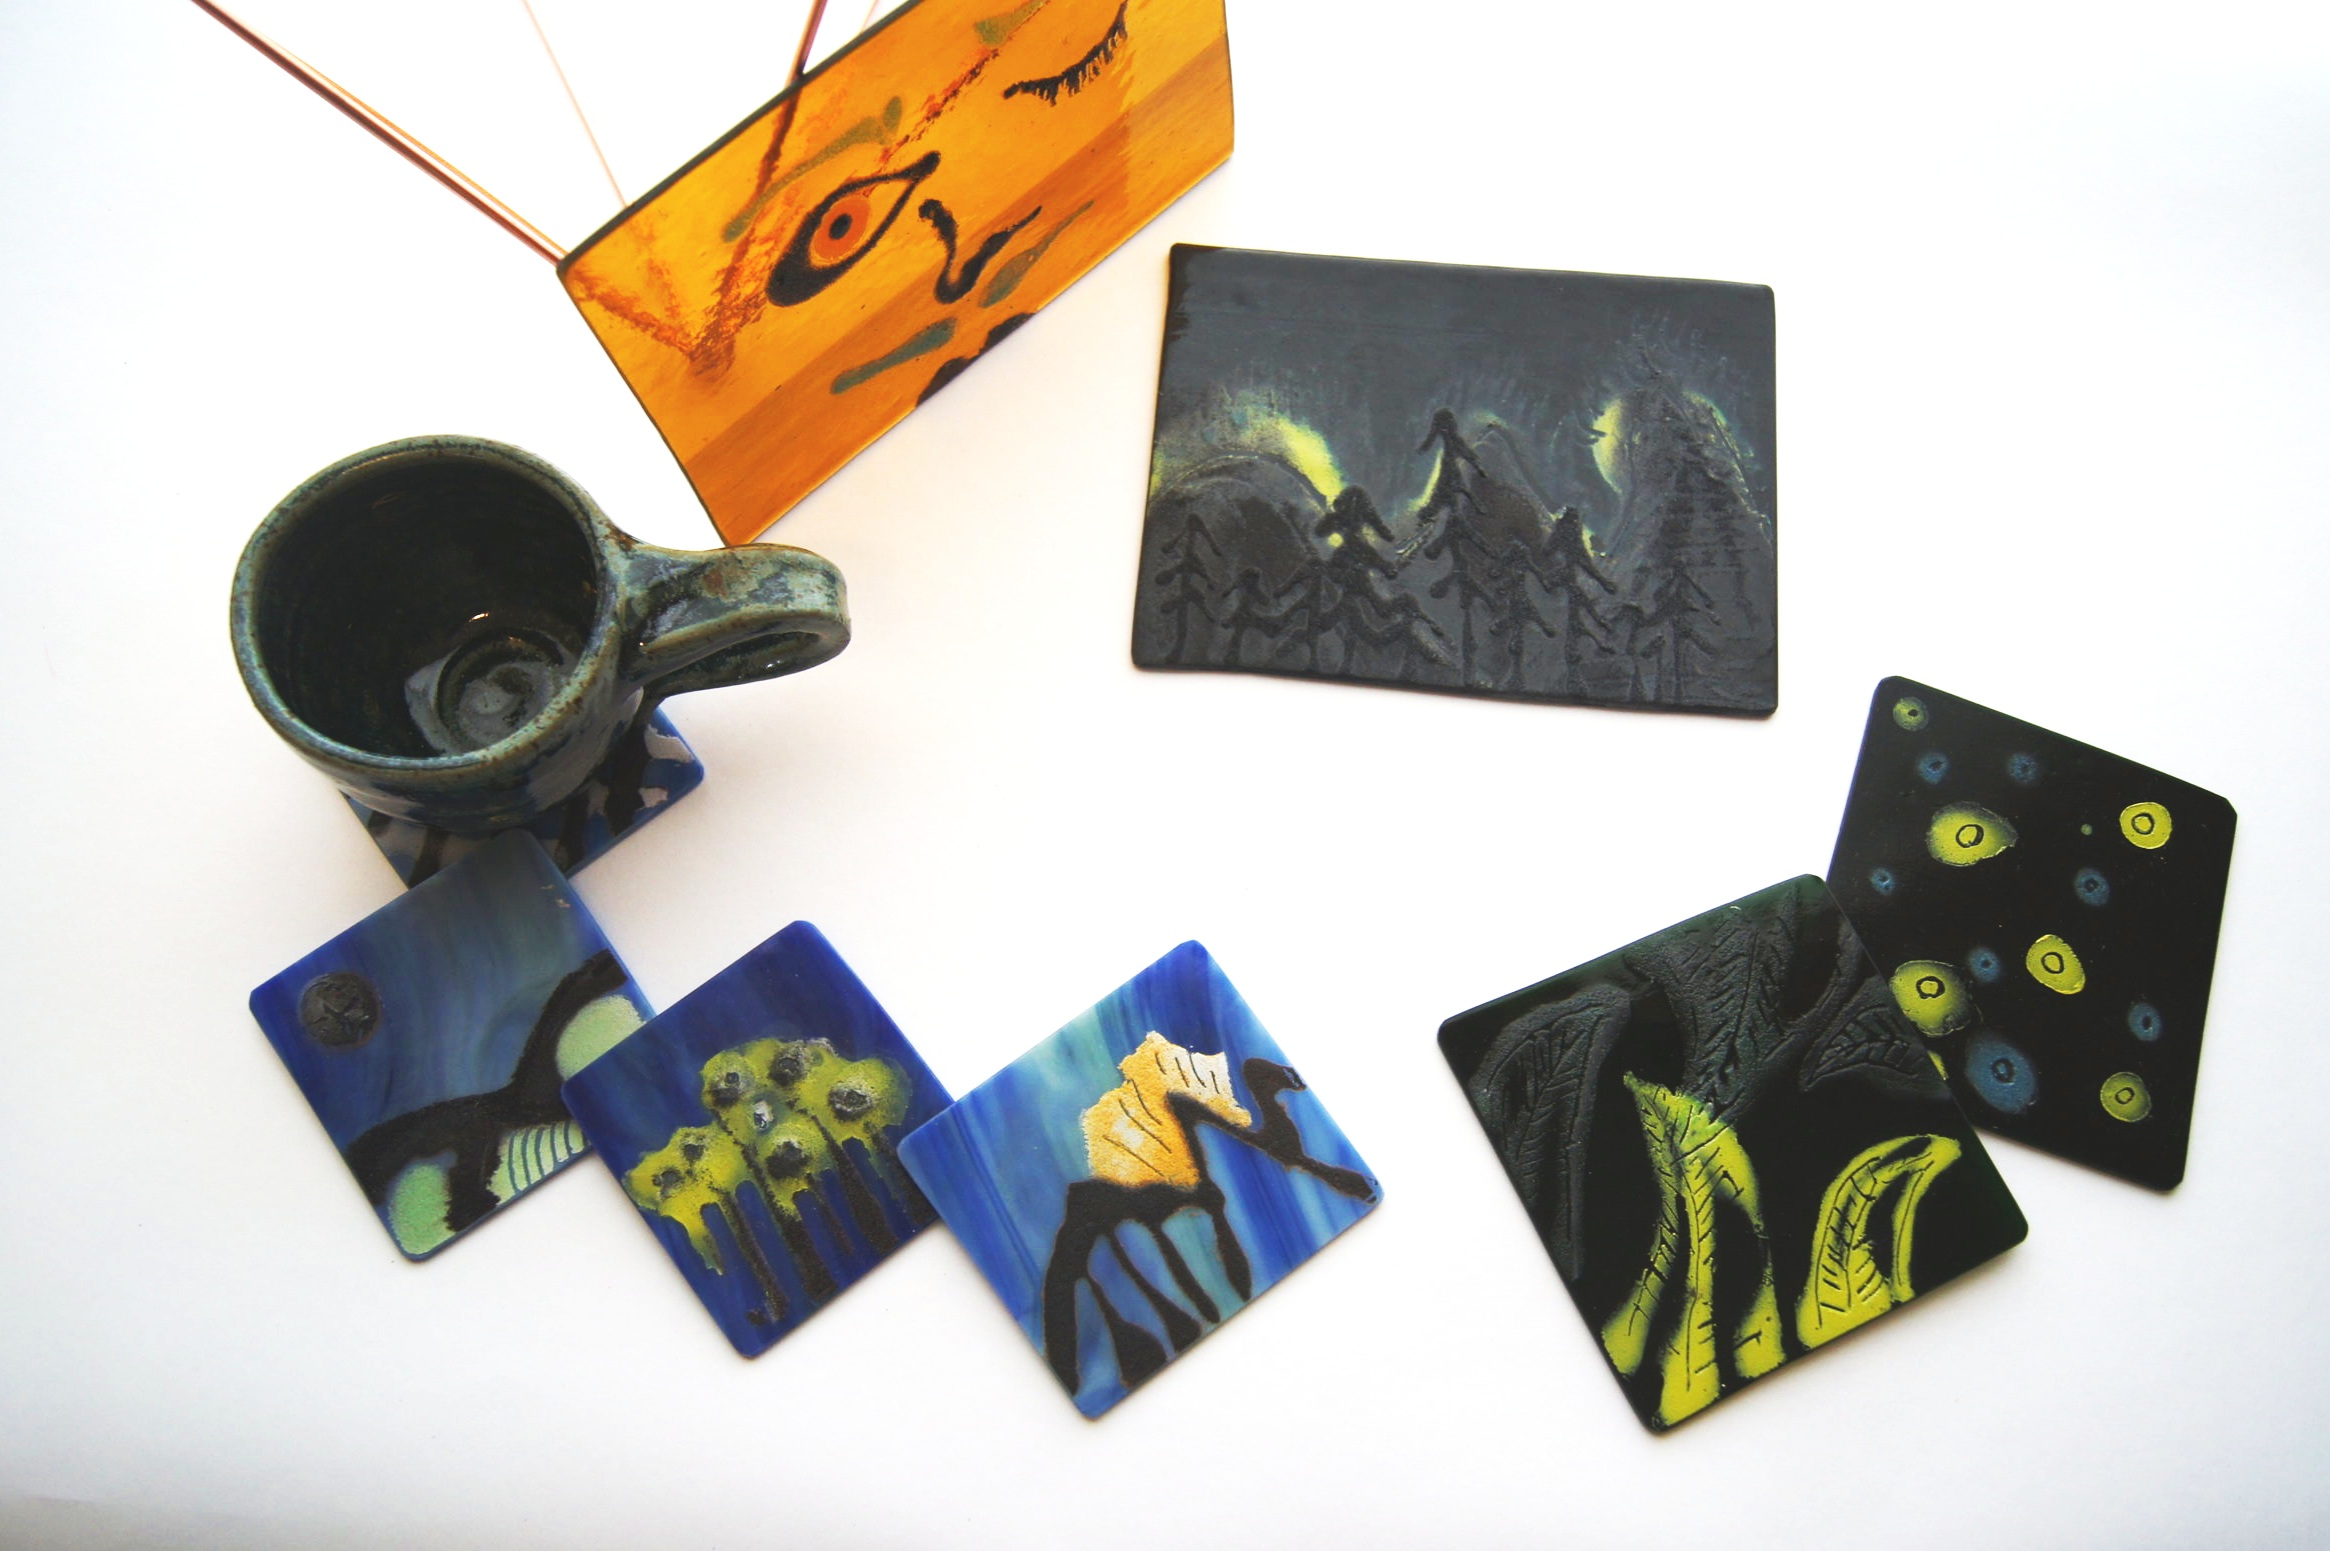 "In this 2 Hour workshop, you will get to choose to paint on a set of 4 coasters or One 6"" x 4"" panel of glass to hang on your window or wall! It is a great time to get to get to know certain compositions of glass and how the process of glass works. Plus once its fired in the kiln, you get to take home this awesome hardcore medium and show it off to your family and friends. Or make it a gift for someone special. More details coming soon! Stay tuned!"